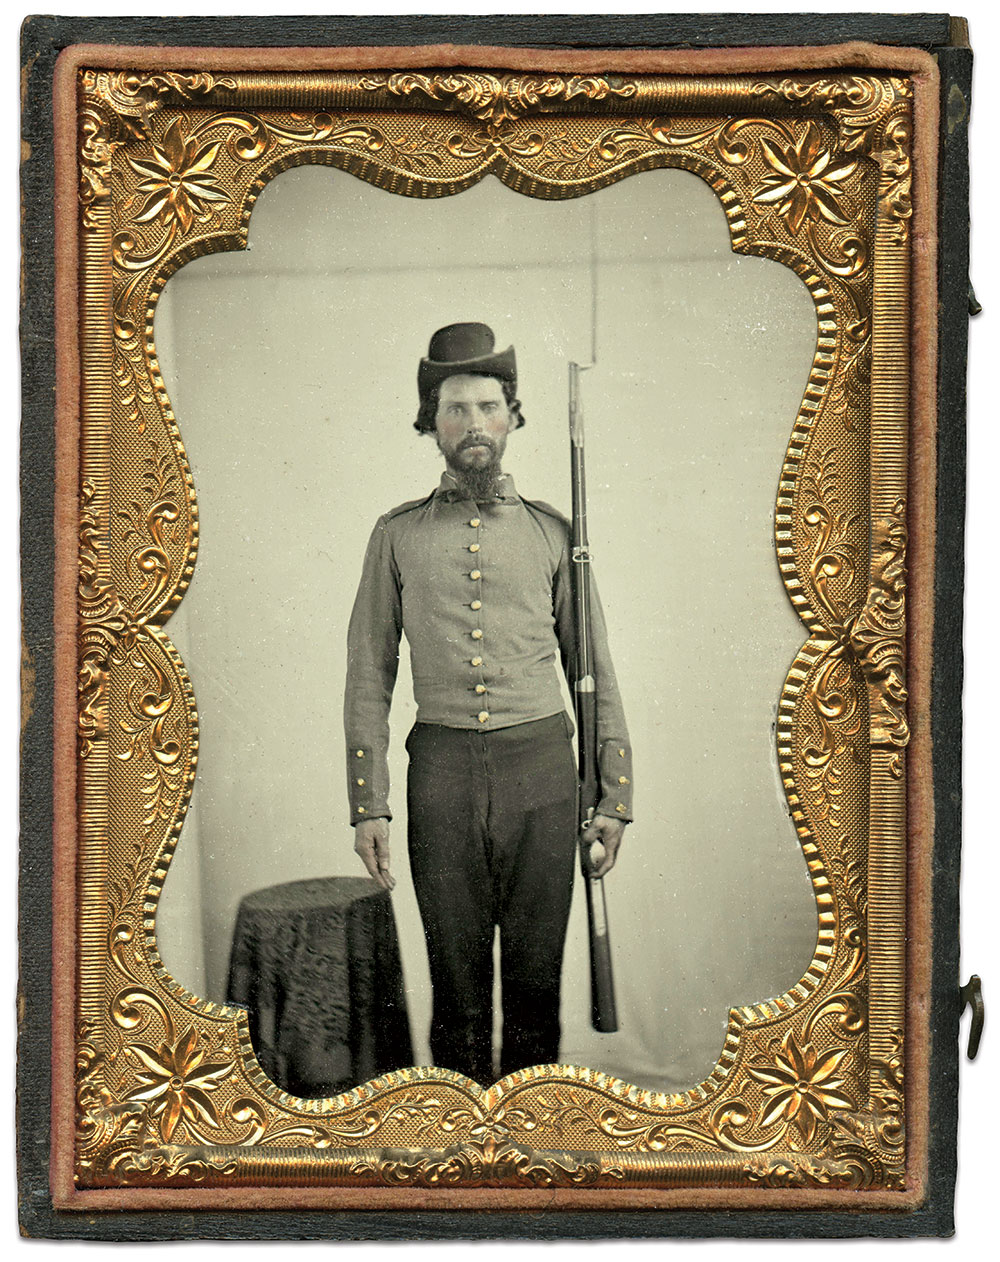 Quarter-plate ambrotype by an anonymous photographer.